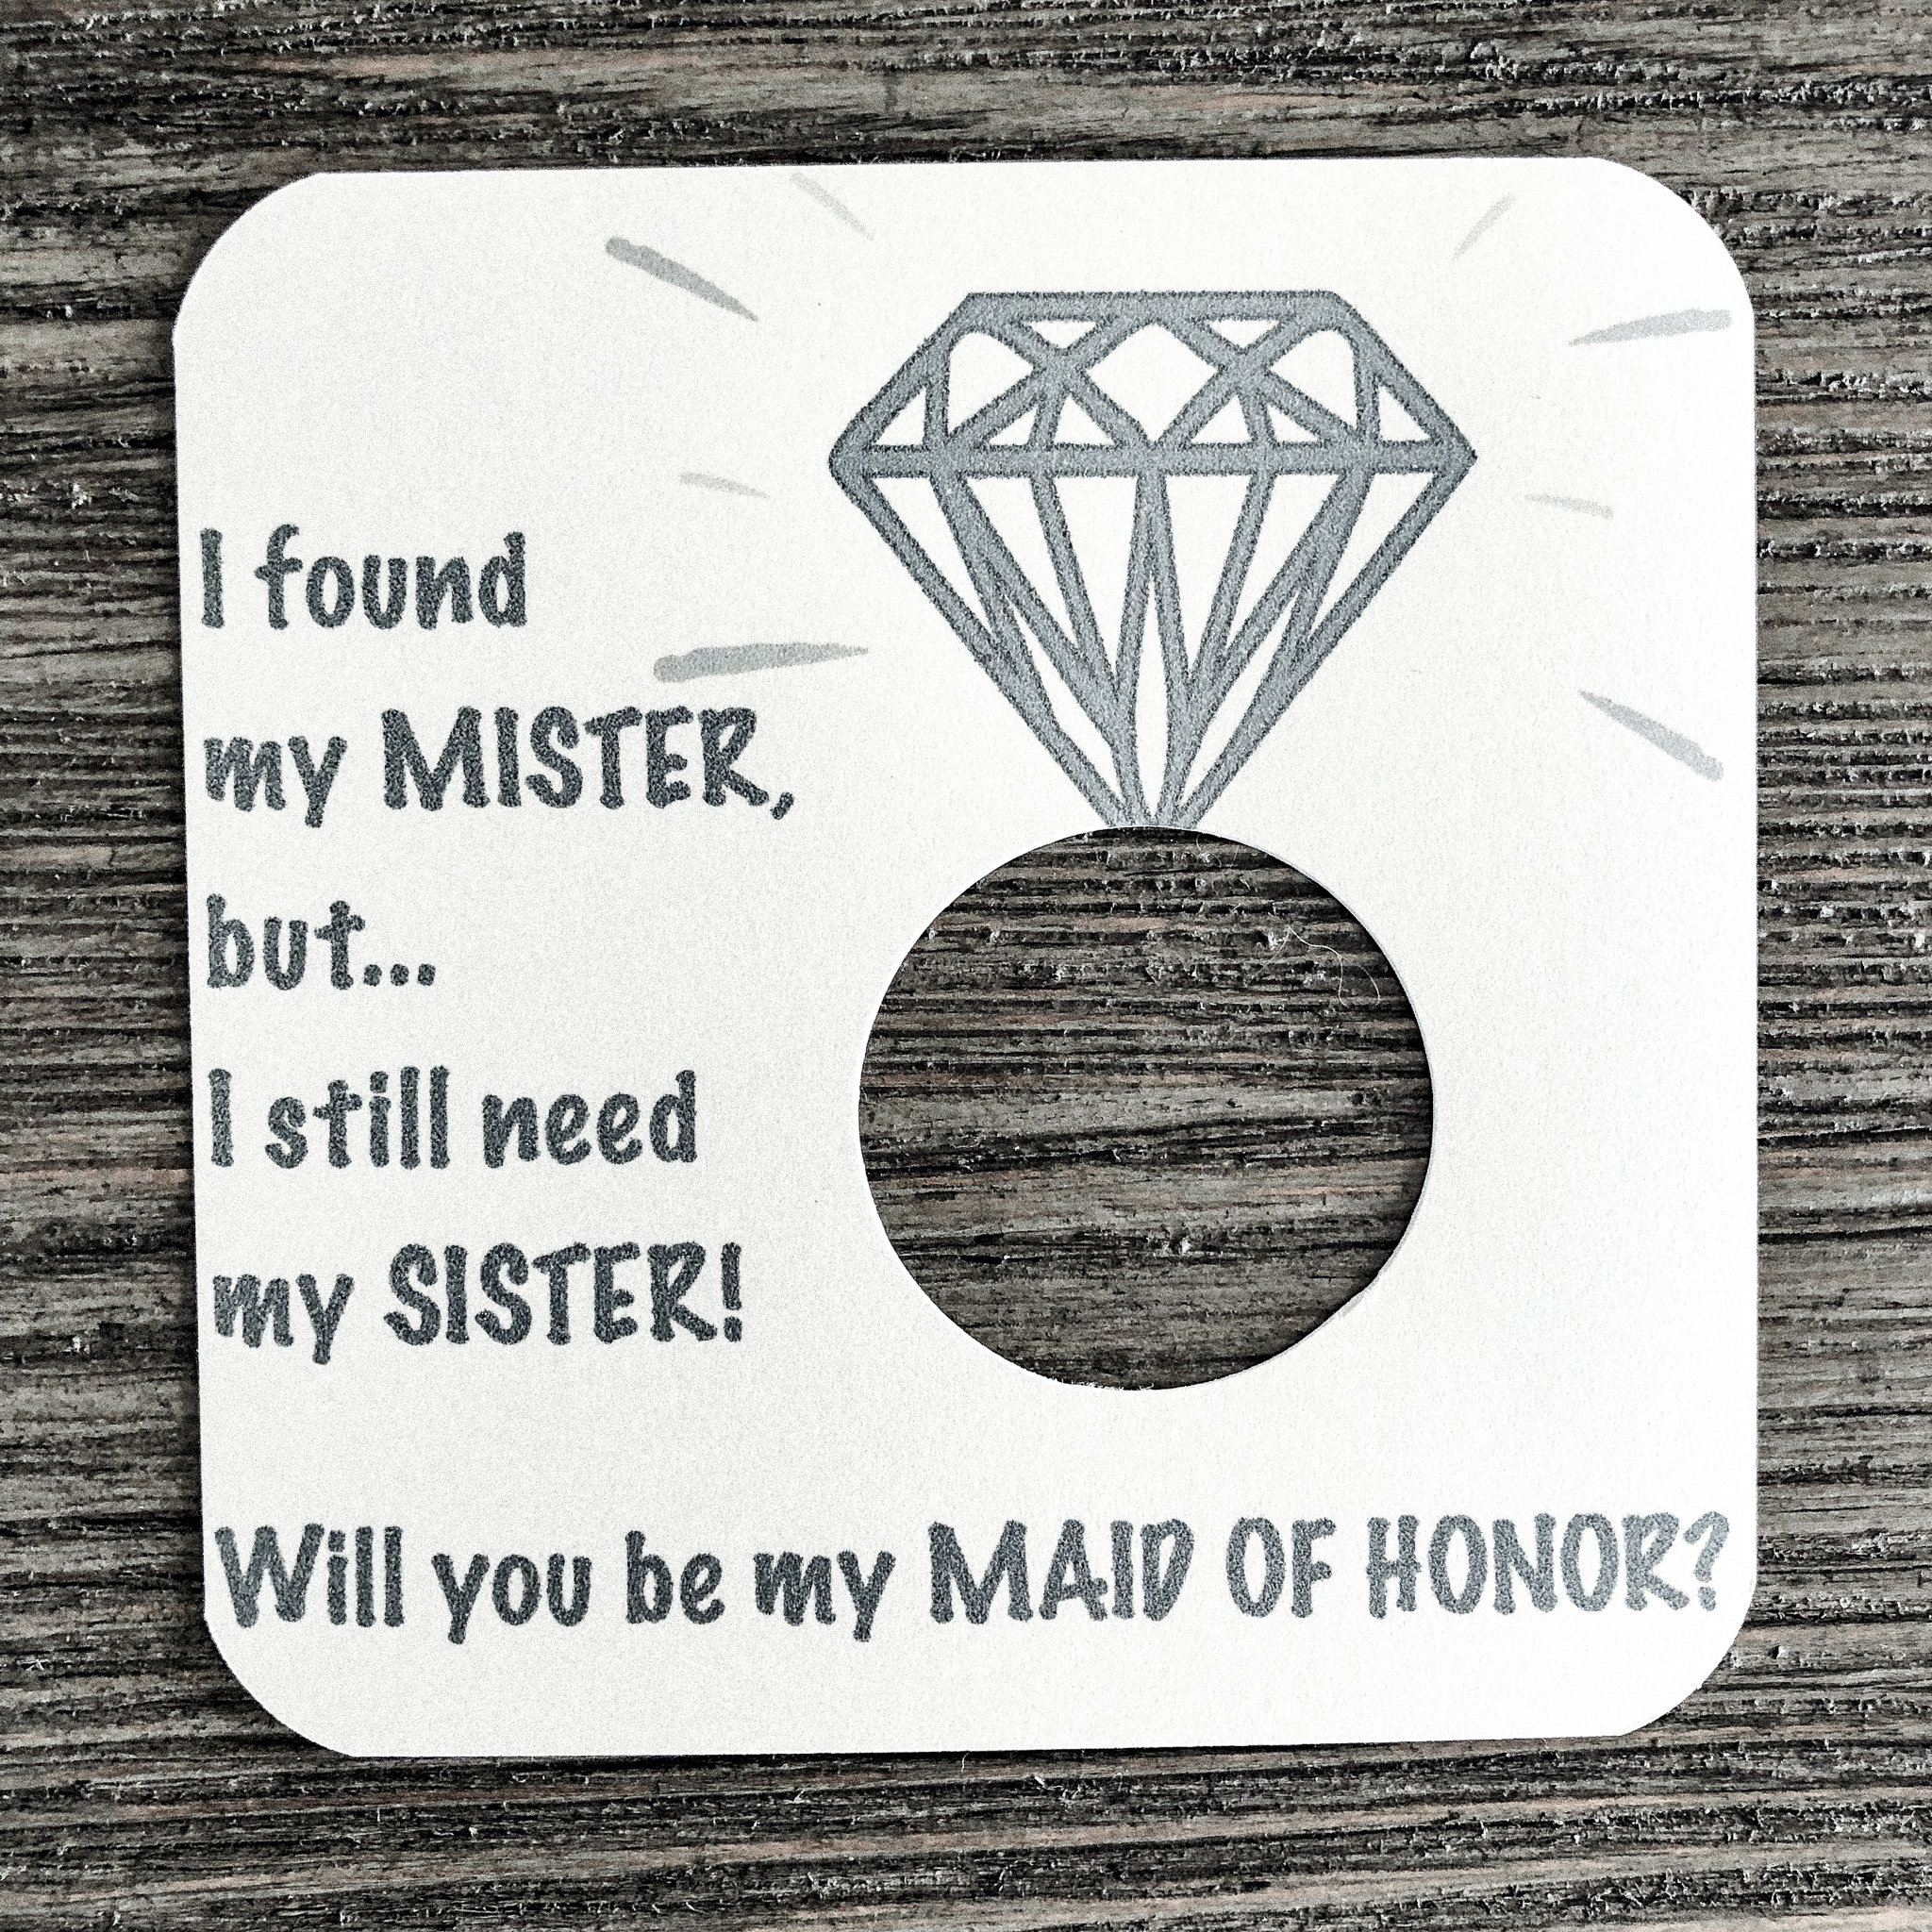 I found my mister, but I still need my sister! Will you be my maid of maid of honor? Shimmer white gold card stock